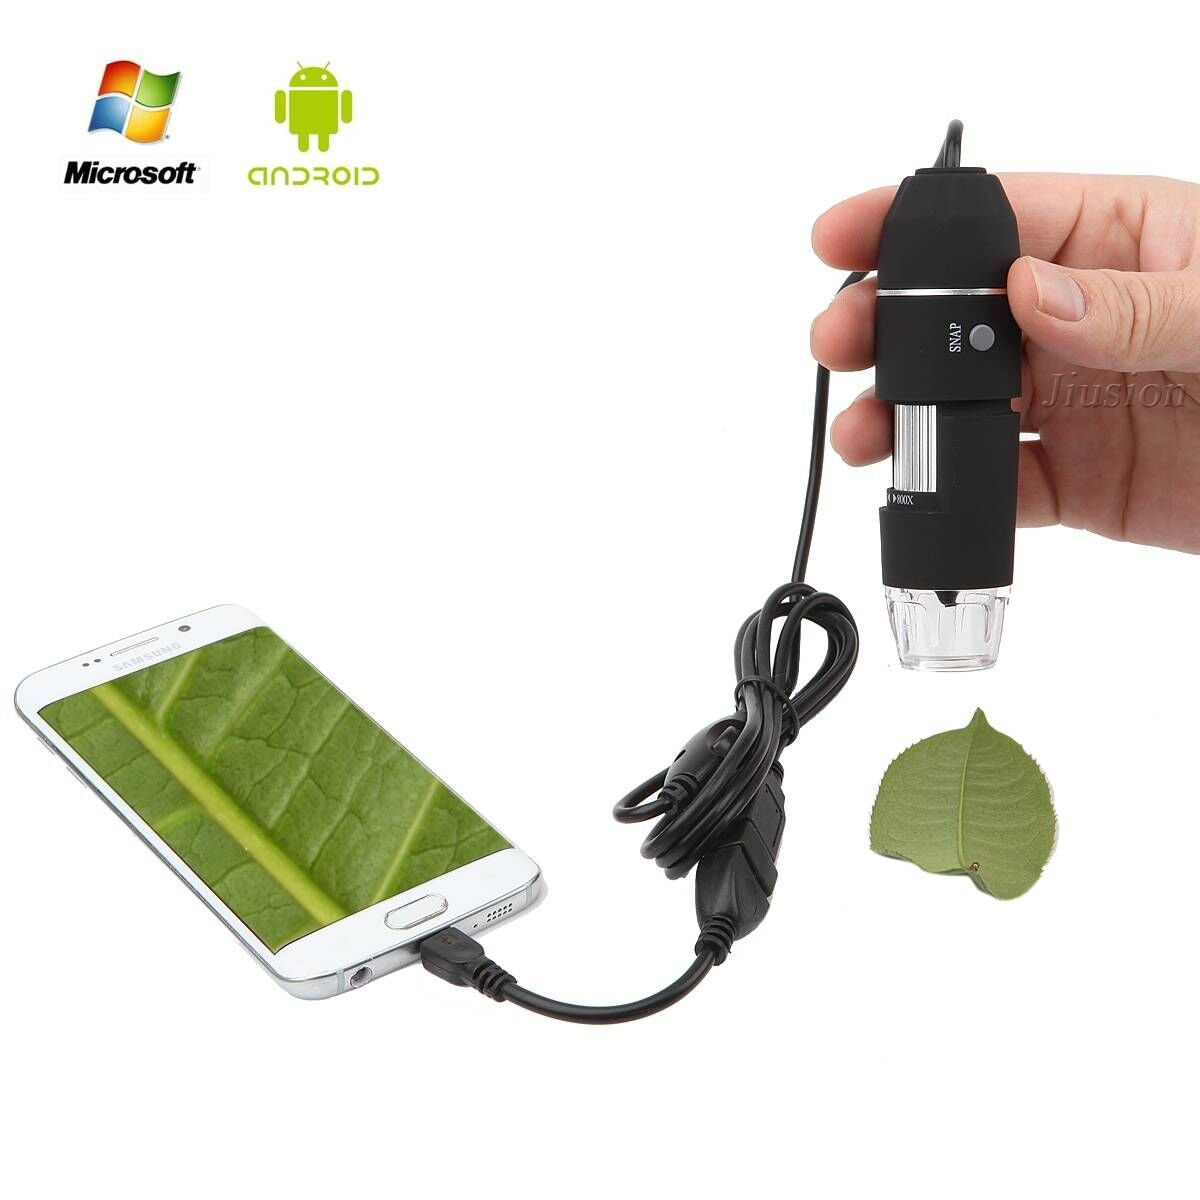 500x 800x 1000x USB Digital Microscope Camera Portable Magnification Endoscope OTG Stand for Samsung Android Mobile Window Mac